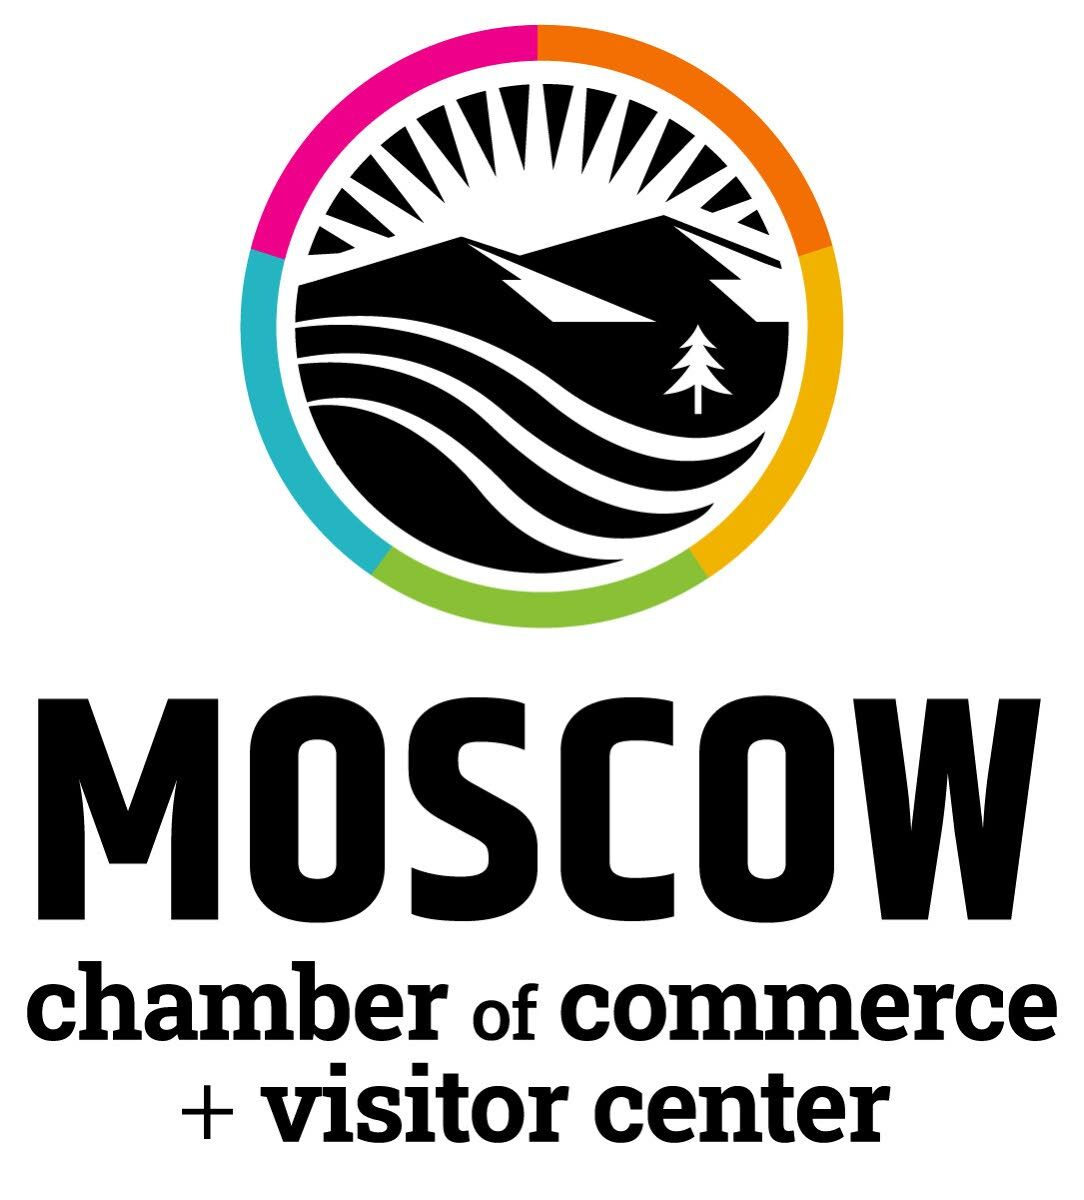 Moscow Chamber of Commerce launches rebrand